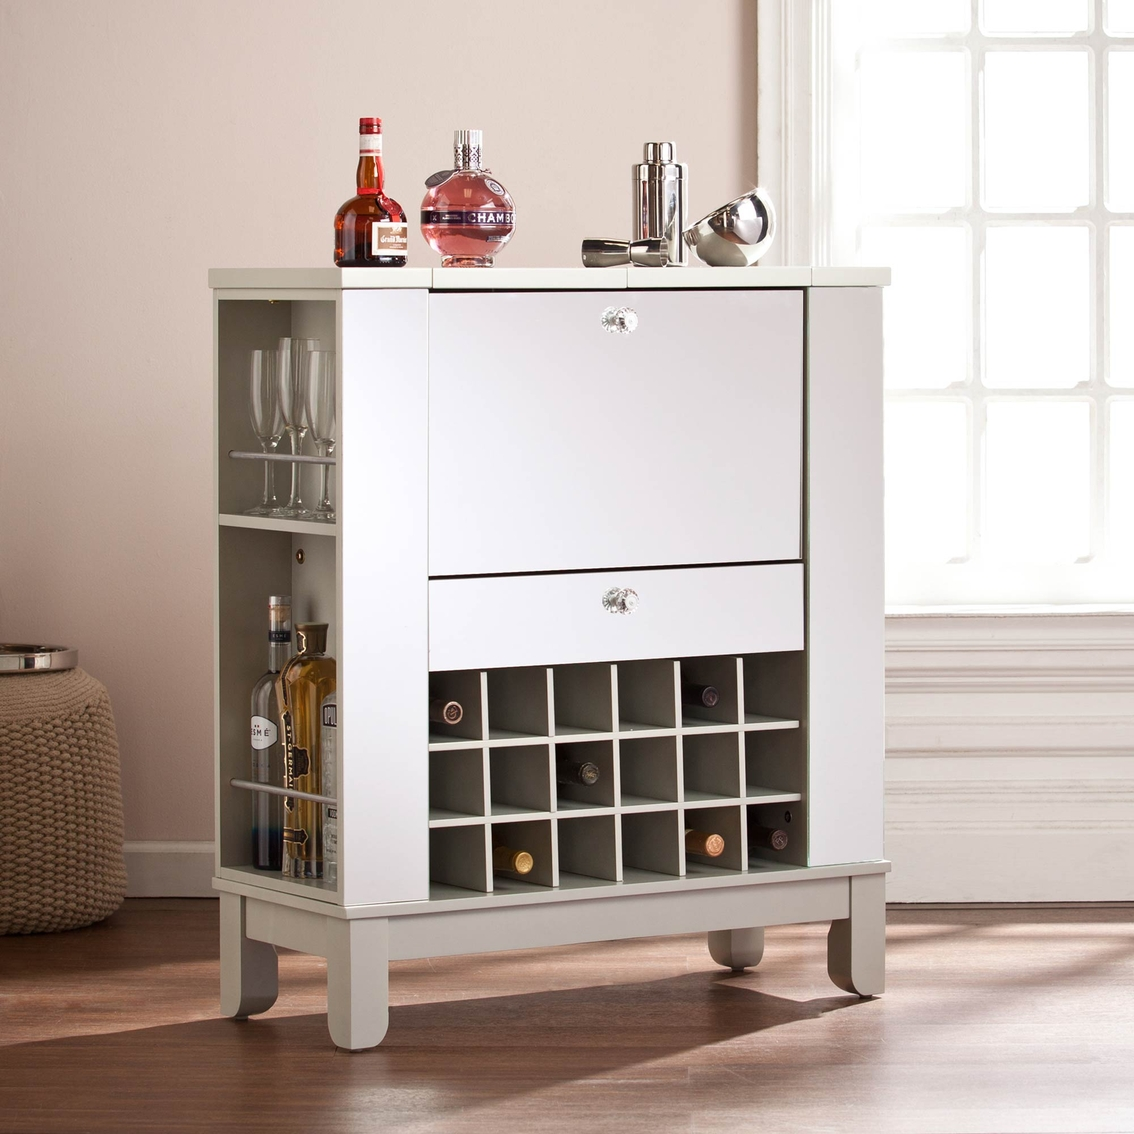 SEI Mirage Mirrored Fold-Out Wine and Bar Cabinet